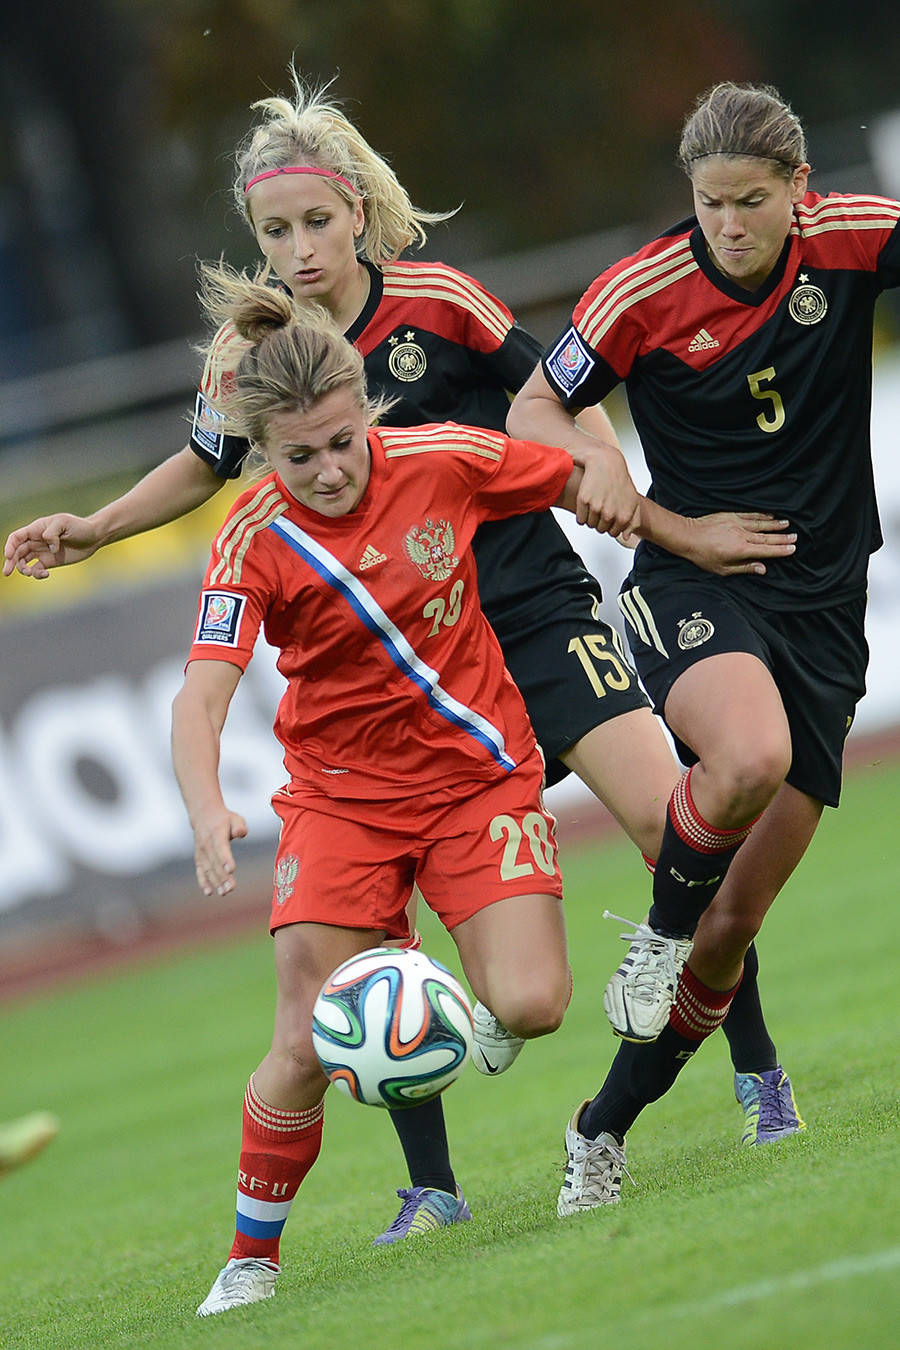 Nelli Korovkina (Russia), Kathrin Hendrich (Germany) and Annike Krahn (Germany), from left, during the Football World Cup 2015 qualification match between the national women's teams of Russia and Germany.